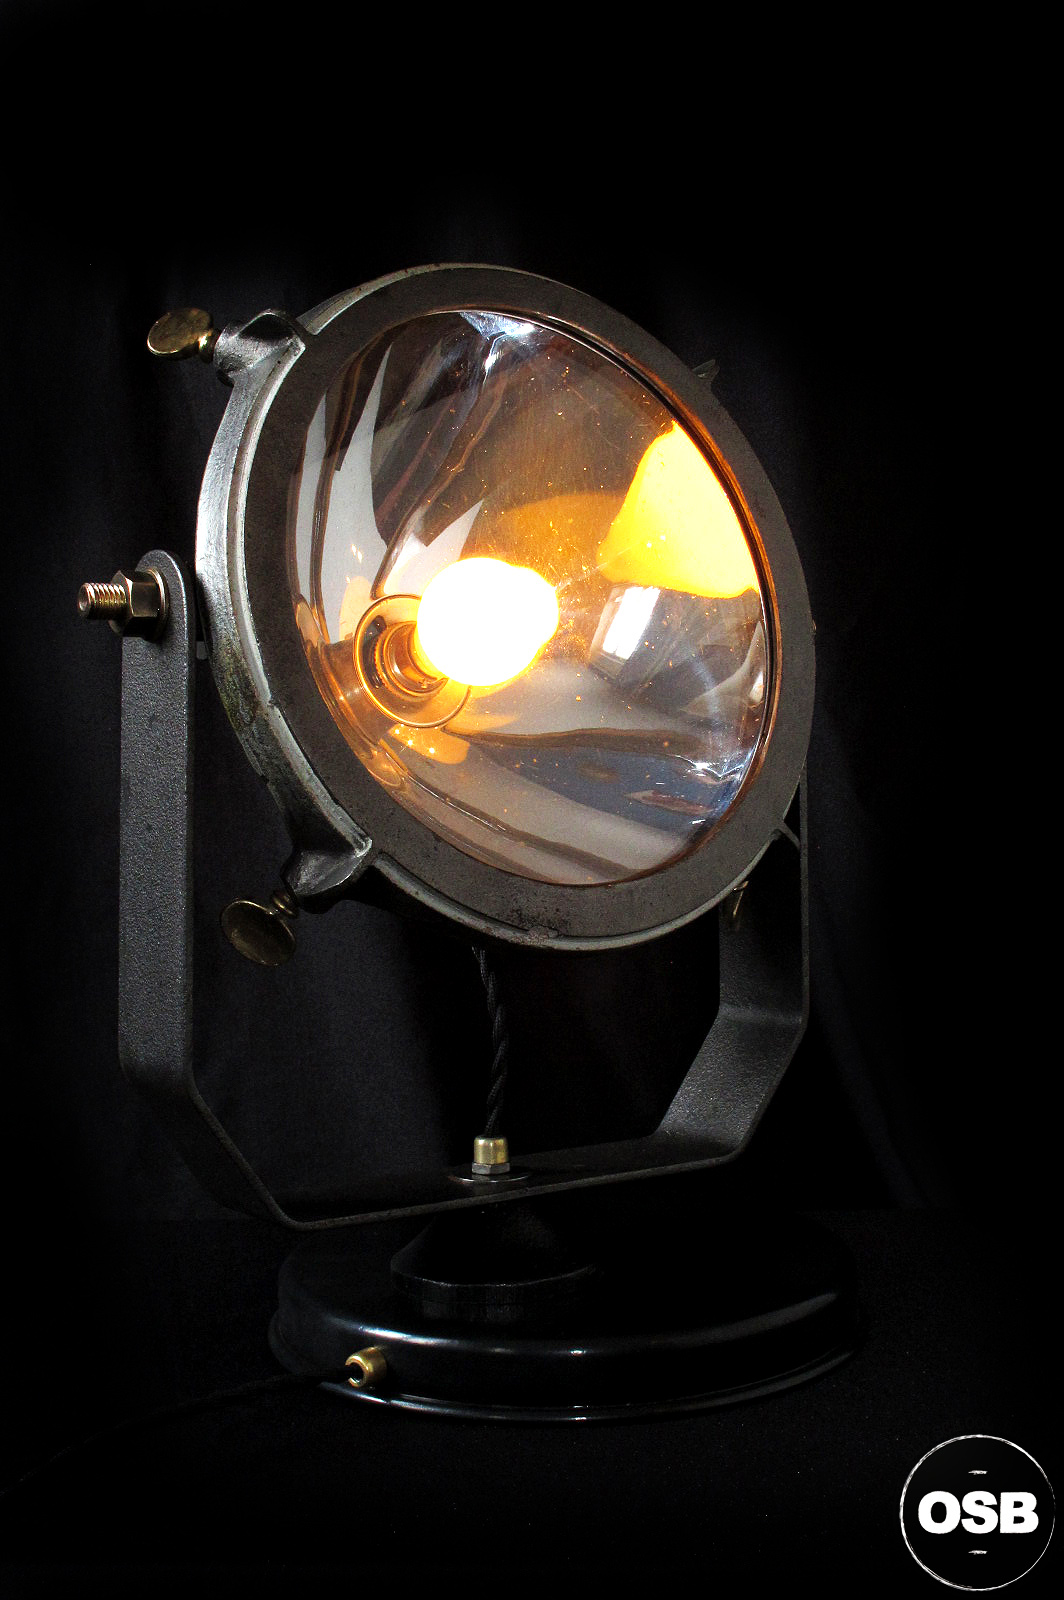 ancien phare projecteur bateau lampe marine ancien decoration loft industriel luminaire vintage. Black Bedroom Furniture Sets. Home Design Ideas